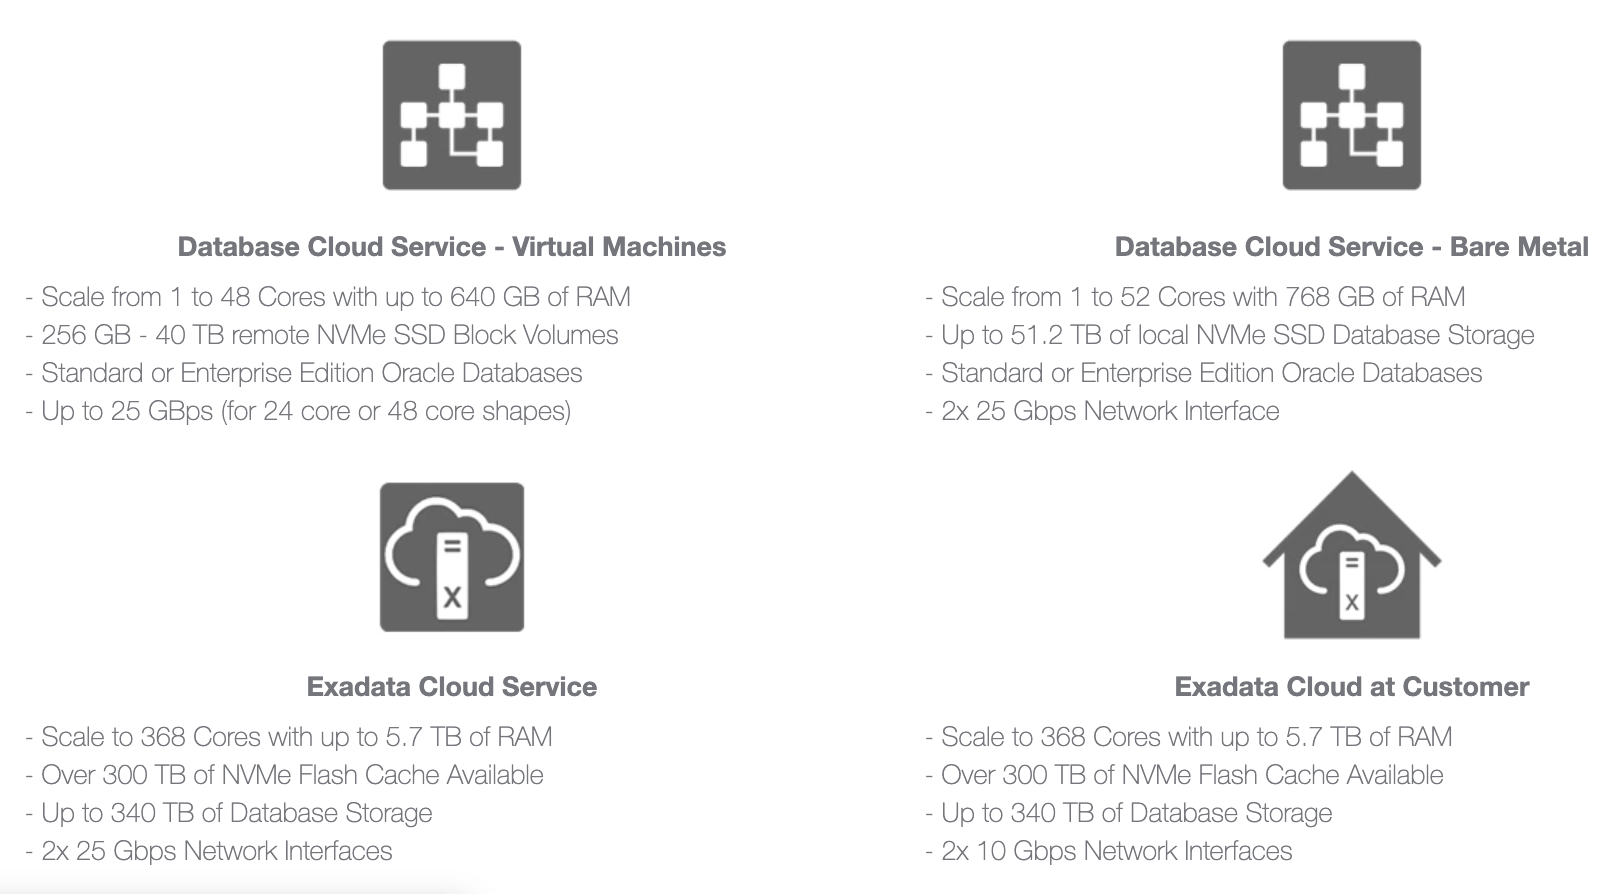 The Top Four Modules of Oracle Database Cloud Service